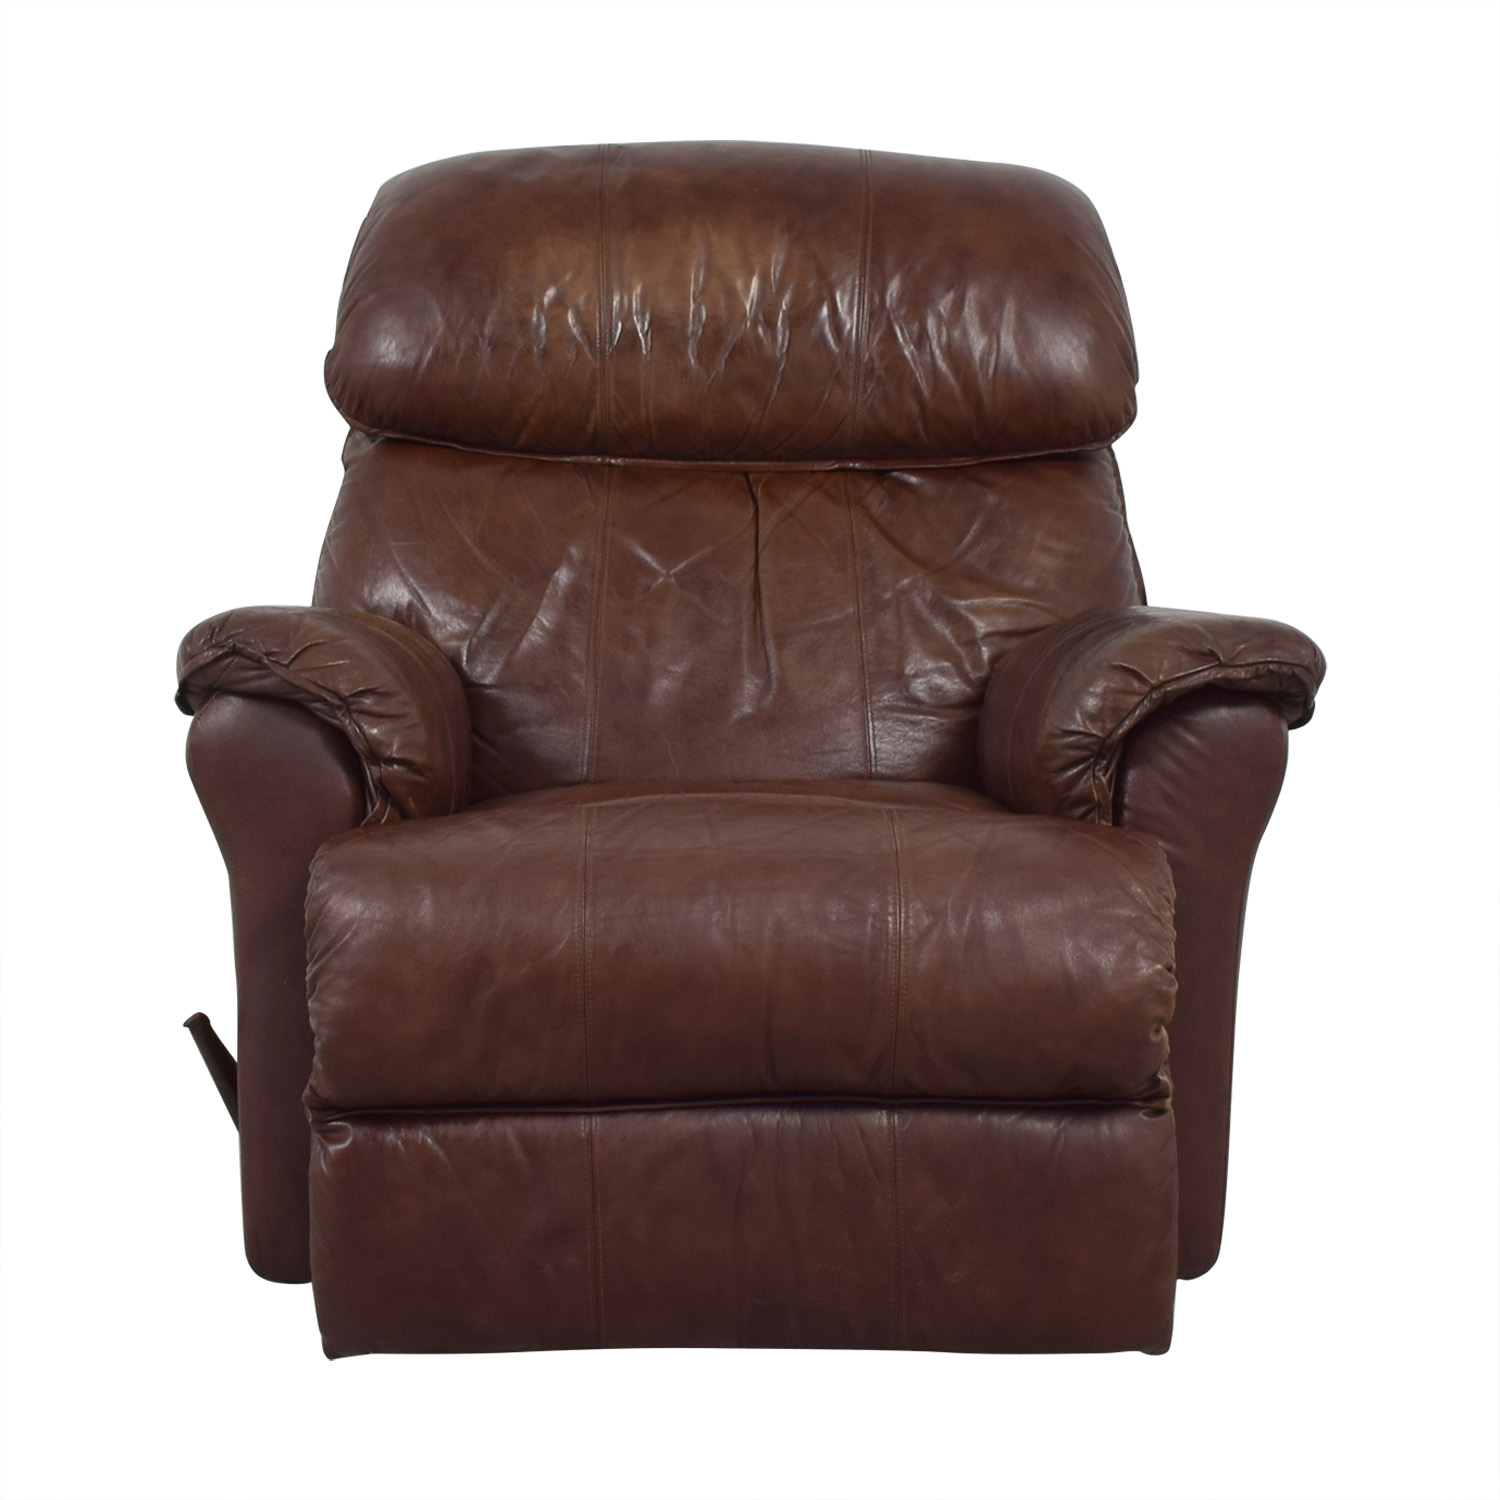 Brown Manual Recliner dimensions